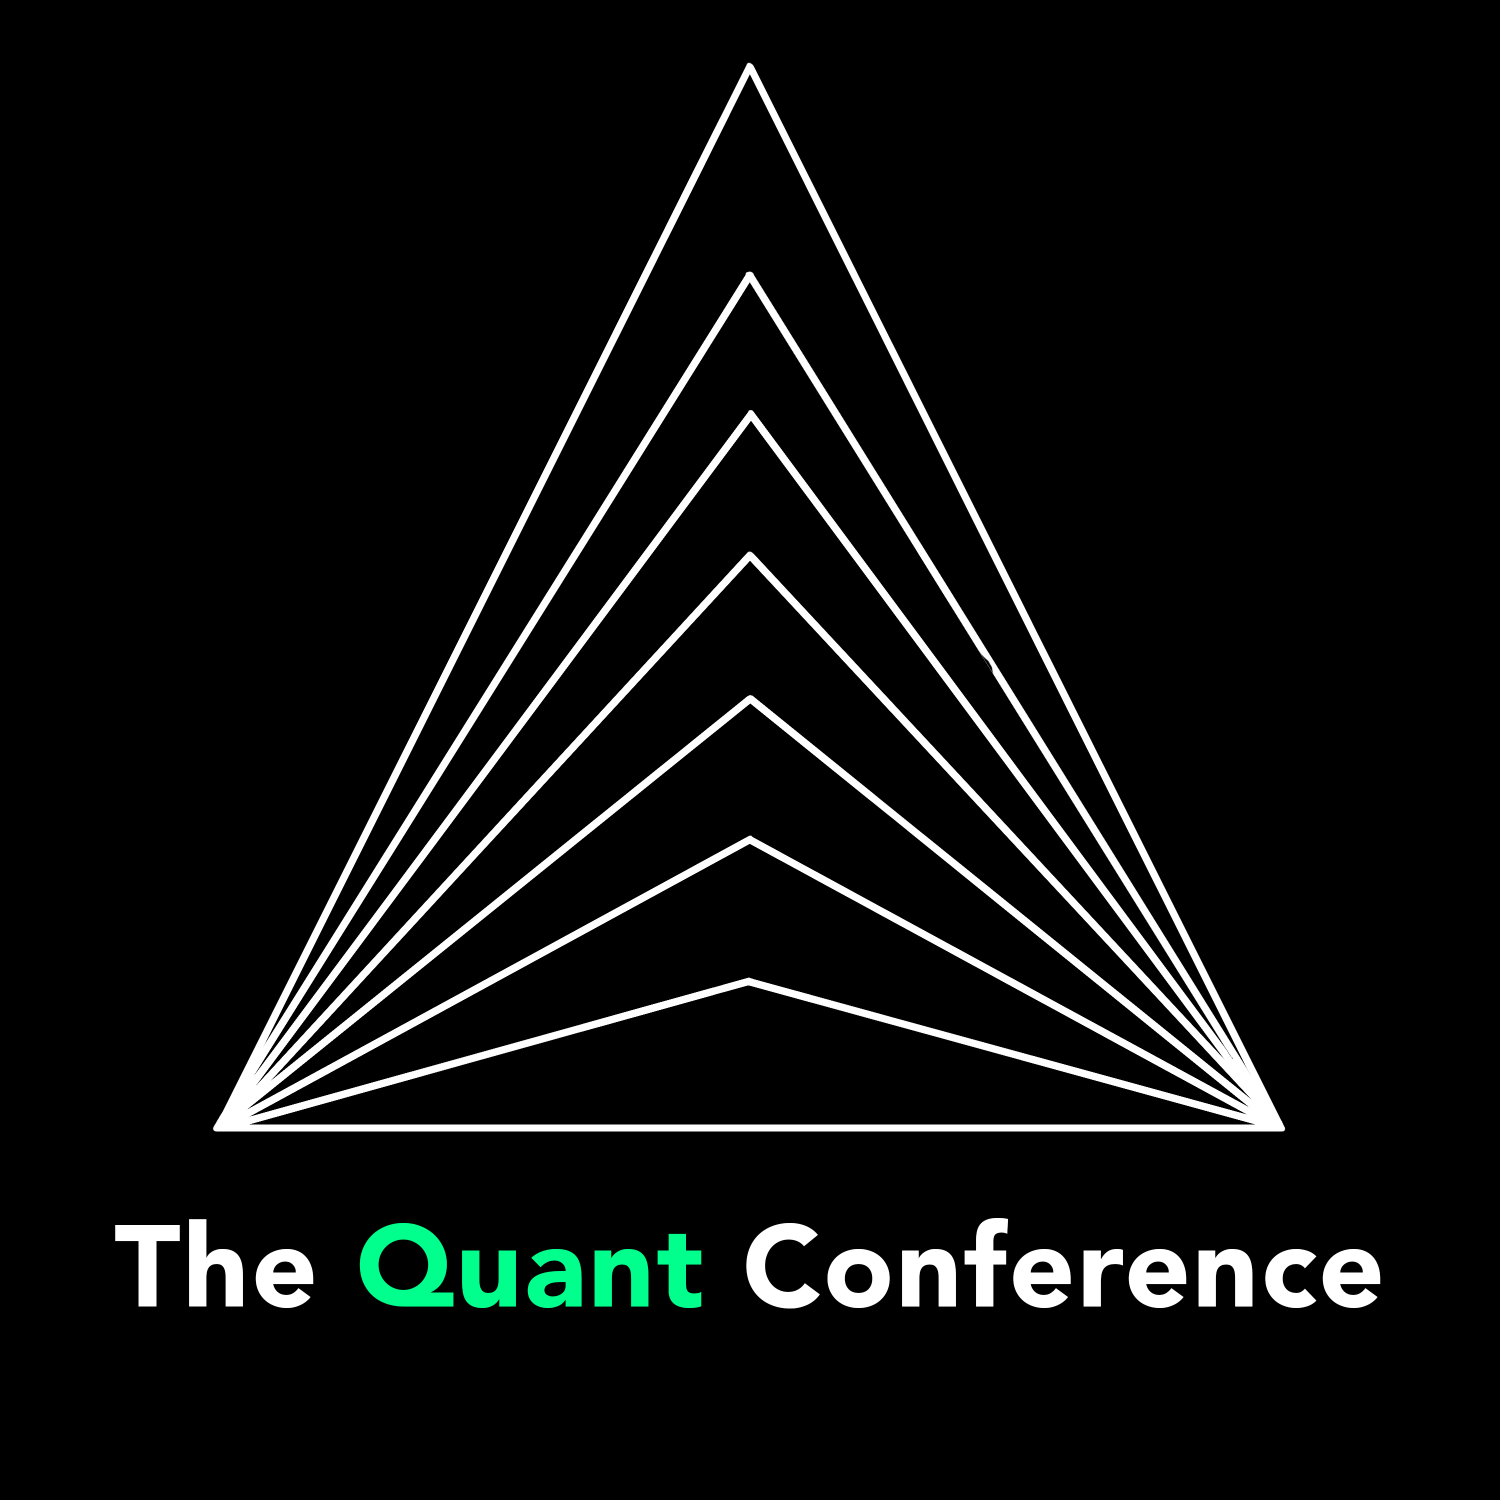 The Quant Conference